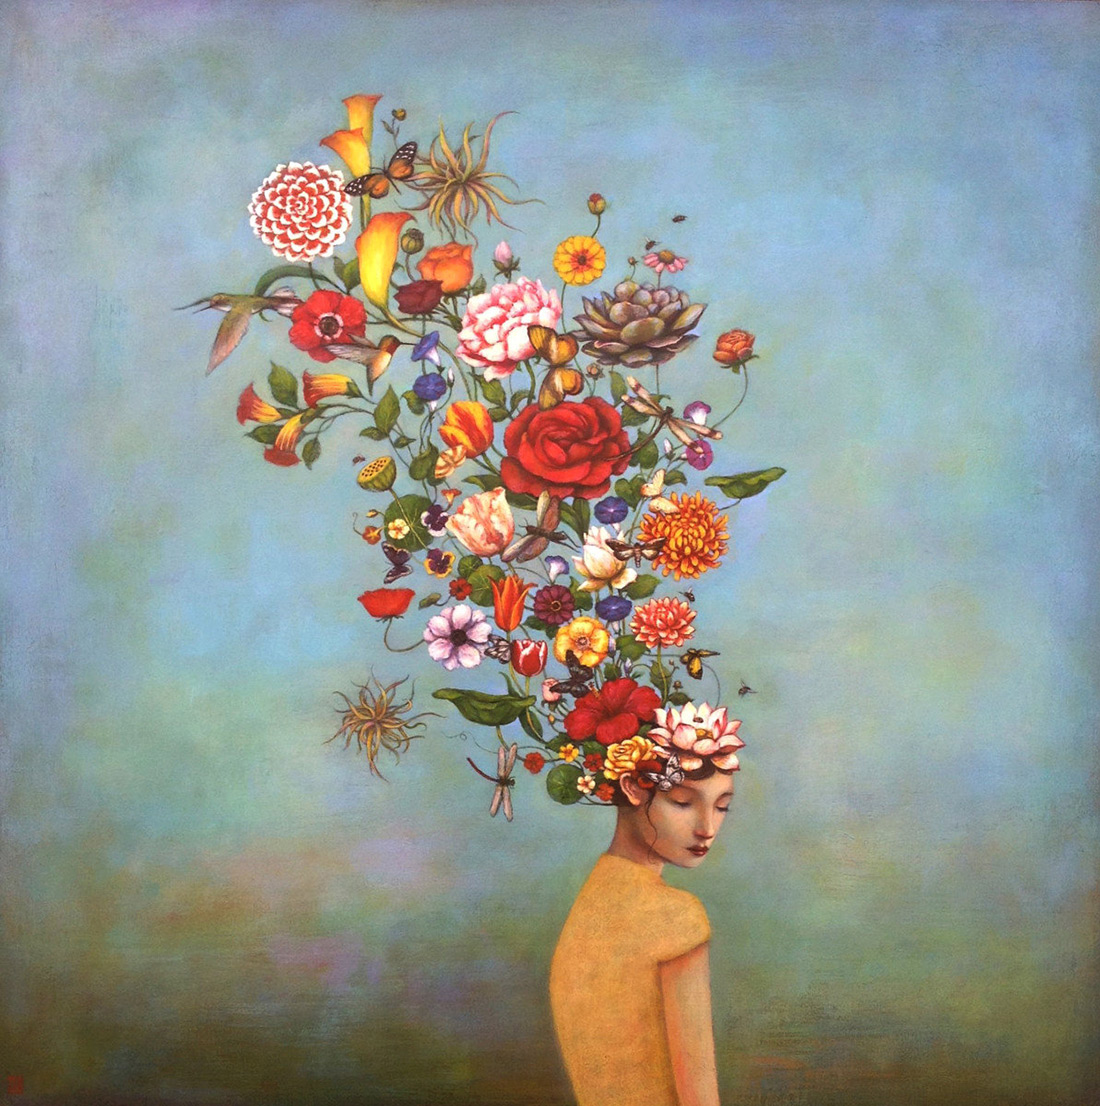 Painting S Ethereal Acrylic Paintings By Duy Huynh Explore Cultural